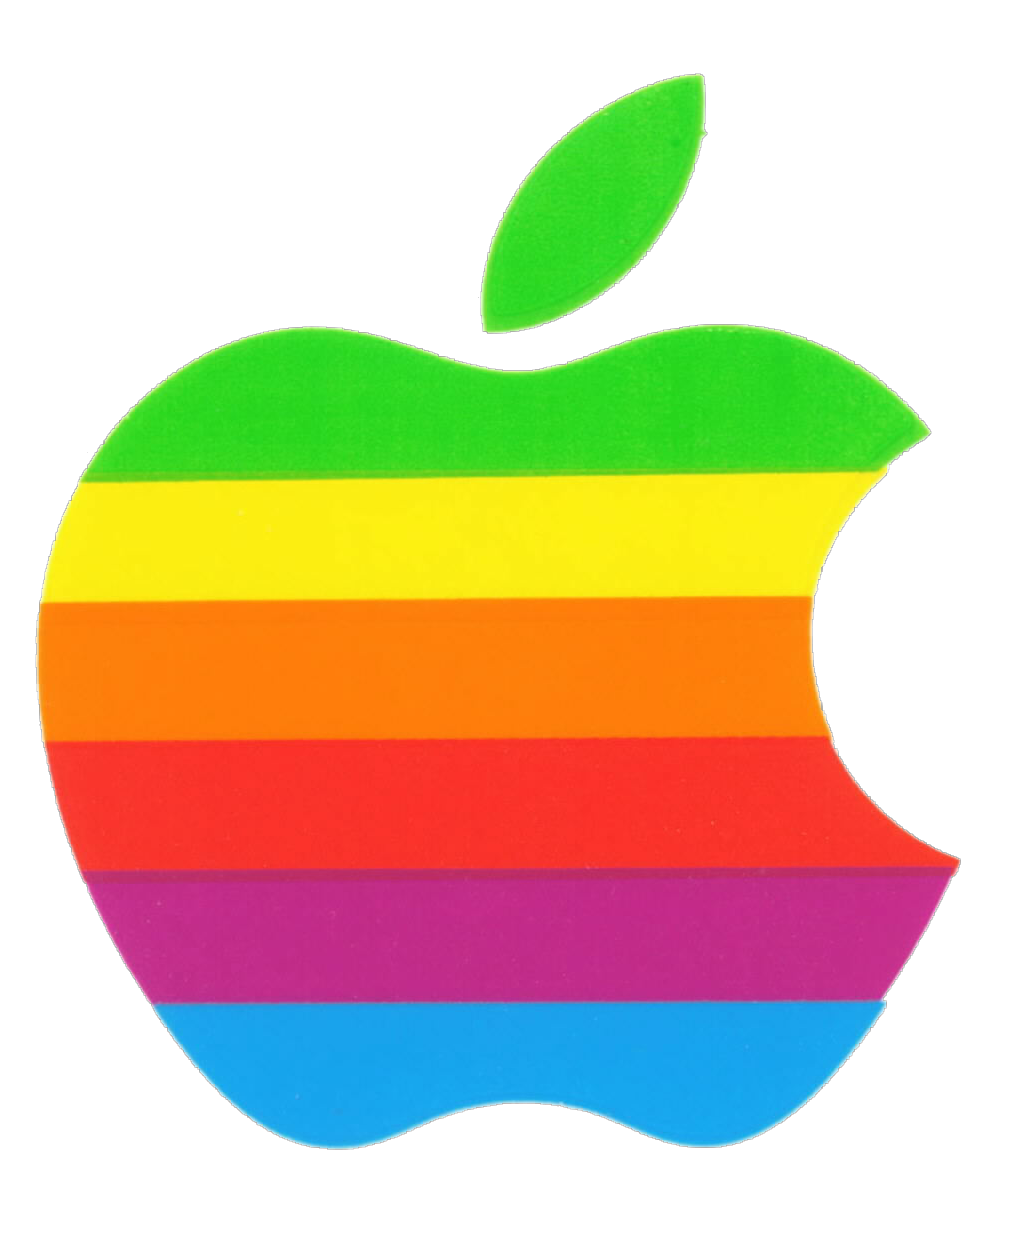 cult stories origine logo apple janoff mela morsicata bite the apple 1977 story cultstories cult stories cultstories cinema cult story cultstory art culture music ipse dixit aneddoti citazioni frasi famose aforismi immagini foto personaggi cultura musica storie facts fatti celebrità vip cult apple store apple watch prezzo apple tv apple id apple pie apple care apple assistenza apple ricondizionati apple store milano apple store roma apple watch apple italia apple account apple azioni apple airport apple app store apple accessori apple america apple appuntamento apple application support apple a8 a apple a day a apple song a apple store a apple pie a apple id a apple youtube a apple tv a apple computer a apple of my eye a apple game apple à paris apple à 1 euro apple à toulouse apple à marseille apple à nantes apple à la réunion apple à lille appel à projet apple à la bourse apple à rennes apple à sion apple à genève apple à québec apple à lyon apple bologna apple bari apple blog apple borsa apple beta apple batteria apple beats apple bonjour apple bergamo apple brescia b appleyard b applet b apple rush tattoo supplies b apple rush applet b tree apple b w apple b stock apple b w a7 apple b&w a5 apple b w p3 apple crumble apple computer apple campus apple carugate apple contatti apple carplay apple catania apple icloud apple caserta c appleby c applegate c apple peel c appleby horses c applet c apple solutions gurgaon c appleby entries c appleby racing c apple peel t288 c apple peel t288 for ipod touch 4g apple developer apple developer program apple distribution international apple de apple diagnostic apple dubai apple desenzano apple display apple drone apple dev center d. appleton and company apple itunes d'apple histoire d apple fibre d'apple fiber testimoni d apple cafe d'apple busana bridal d'apple frozen chicken chop apple d-u-n-s apple d link camera apple education apple euroma2 apple event apple email apple events apple event 2015 apple es apple euronics apple exchange e apple tv e applegate rate my professor e apple watch e apple daily e apple gift card e apple store e apple id e apple mahanagar email apple apple e samsung apple étudiant apple écouteurs apple échange iphone apple écran apple étudiant réduction apple écouteurs earpods apple éducation nationale apple étudiant suisse apple éducation store apple étui é apple keyboard é apple shortcut apple tv cos'è é meglio apple o samsung apple é americana applebee's é caro apple é a empresa mais valiosa do mundo apple é a melhor marca do mundo apple é de que pais apple é melhor que samsung apple è meglio di samsung apple è americana apple è migliore apple è un sistema operativo apple è meglio apple è il male apple è della microsoft apple è un marchio registrato apple è una setta apple è finita apple è la migliore apple è una multinazionale apple fiordaliso apple france apple firenze apple finanziamento apple forum apple font apple fit apple fatturato apple facebook apple fondatore f applet f appleton dock f apple id apple f&q apple f 5 ctrl f apple f=ma applet apple f r applestore.f applet f distribution apple genius bar apple garanzia apple gigli apple genova apple germania apple grugliasco apple gratis apple g5 apple gsx apple gift card g apple watch g apple store g-apple.cz g apple dreams g apple id g apple circus g apple studio sdn bhd g applegate associates g apple ipad g-apple shop apple hardware test apple home kit apple hong kong apple hdblog apple health apple hardware test yosemite apple hk apple history apple hardware test non parte apple help h apple e baseball field h appleyard & sons ltd h appleyard h apples h appleby engineering h apple shooter h apple tv apple h264 apple h 265 appleapiopts h apple iphone apple ipad apple iwatch apple iphone 5s apple imac apple ipod i apple significato i apple id i apple store i apple watch i apple tv i apple 5 i apple iphone i apple mobile i apple 4s i apple iphone 5 apple ísland apple í a tara apple íd apple í kringlunni apple índia apple í fríhöfninni apple ípad apple ípod apple ítélet apple búðin íslandi apple í a netflix í apple tv nhac apple í a bai apple í a apple í a live apple í a mp3 apple ìd ìpad apple apple serial number info apple- dota ïúã êøèíþ apple applejack apple job apple java apple japan apple juice apple java yosemite apple joint venture apple jailbreak apple jawbone apple jacks apple keynote apple keynote 2015 apple keyboard con tastierino numerico apple kush apple keyboard con tastierino numerico - italiano apple kasko apple keychain apple korea apple keyboard helper apple keynotes k applegate k apple fence k apple cider k apple cider beer k apple beer k apple spa nyc apple store uk pre k apple activities vitamin k apples u.k. apple award apple lavora con noi apple logo apple lisa apple lounge apple le gru apple lecce apple leone apple logic apple lossless apple le befane l'apple l'apple care l apple fa schifo l'apple time capsule l applet l apple id l apple newton l'apple puo prendere virus l apple hardware test l'apple store apple macbook apple macbook air apple milano apple martin apple mail apple mac mini apple movie trailer apple maps apple mac pro apple marcianise m appleby m apple daily m appleby racing post m.applesfera m apple store apple m&a history apple m audio m&s apple crumble lynda m applegate m audio apple store apple numero verde apple news apple nasdaq apple notebook apple new york apple napoli apple newton apple notizie apple numero di serie apple noleggio n applescript n appleyard pressure washing services n apple tv n apple iphone 4 - 16gb - black (verizon) smartphone (a) n appleton n apple iphone 4 n apple id apple n berry apple n apps apple n.y apple on campus apple one to one apple online store apple o samsung apple orio apple offerte apple o android apple on campus unitn apple of my eye apple os o apple store apple o windows apple o microsoft apple o pc apple o samsung yahoo apple o android yahoo apple o windows 8 apple o samsung tablet apple óra apple óra eladó apple óra ára apple órák apple óbuda apple óra telefon óculos apple óculos apple red ódýrar apple tölvur ódýrar apple vörur you are apple ò my eye the apple of my eye apple pay apple porta di roma apple pie recipe apple pie americana apple photos apple pc apple portatile apple prezzi apple padova p apples p appleyard plastering p. appletonianum p applet p.applebee apple p e apple p b ratio pram apple apple p g apple quotazioni apple quotes apple qmaster apple quotazione tempo reale apple q1 2015 apple quotata in borsa apple queen la spezia apple qatar apple quanto vale q apple store q apple mobile q apple house q apple bar kuantan q application apple q&a sherlock apple q player apple q 4 apple q lab apple rumors apple rigenerati apple roma est apple remote desktop apple ritiro usato apple rozzano apple rimini apple remote apple records r/apple imgur r apple pie r/apple reddit why are apples good for u r apples mequon r apples good for dogs r apple seeds poisonous r apples good for you r apples fattening r apples apple support apple store usa apple store torino apple store carugate apple store firenze apple store bologna apple store roma est apple store fiordaliso s appleby golfer s apple watch waterproof s'appeler s appleby s apple polyvore apple s 4 apple s 5 apple s n apple s 6 apple torino apple tv jailbreak apple tv 3 apple tv prezzo apple tv 2015 apple thunderbolt display apple tv 3 jailbreak apple tv recensione apple tv sky go t applet t apple iphone t apple tv t apple id apple t shirt apple t v 3 jailbreak apple t shirt blue apple t shirt amazon apple t v jailbreak applejack t shirt apple usa apple uk apple università apple udine apple unibo apple usa store apple uae apple usb superdrive apple university apple unipi u apple store u apple id is vergrendeld u apple iphone 3gs apple u.s apple u srbiji apple u.s store apple u.s.a. official apple u village seattle apple u village apple u store thailand apple úr apple úrið apple úc apple új vezetője apple účet apple újdonságok 2013 apple újdonságok apple účet bez kreditní karty apple újdonságok 2012 apple ústí nad labem apple ú applestore ú tao id apple ú ùhttp www apple it apple mini apple ù apple verifica garanzia apple via roma apple vs samsung apple valore azionario apple varese apple via rizzoli apple verifica imei apple verona apple vicenza apple vs android v apple fruit hawaii v+ apple v+ apple kalorien v apple preis appleton v x apple v samsung apple v samsung trial apple v microsoft apple v samsung lawsuit apple watch in italia apple watch price apple watch sport apple watch recensione apple watch funzioni apple webkit safari apple watch uscita italia apple watch quando esce w apple watch apple w polsce apple w warszawie apple w polsce sklepy apple w michael r w apple apple w plusie apple w play applebee's w-2 apple xcode apple x11 apple xserve apple xetra apple x server apple xsan apple xerox apple xxii marzo milano apple x soft file recovery for mac apple xanadu x apple md action message x apple md action message ibooks x apple msg load x apple data detectors iphone x apple msg attachment x apple data detectors x apples is b cents x apple data detectors turn off x-apple-data-detectors //0 x-apple-data-detectors //1 apple yahoo apple yosemite apple youtube apple yosemite download apple yosemite 10.10.3 apple yosemite beta apple yosemite usb apple yah apple your verse y apple id y apple is better than android y apple logo is bitten my apple id y appleton apple y cable bmw apple y samsung rainbow dash e applejack apple y microsoft apple y el medio ambiente applezein apple zeb89 apple zero salerno apple zaini apple zeppelin apple zürich apple zen apple zero z applet z apple repair indonesia z apple repair z apples z apple store applet z-index applet z-index problem apple z score apple z wave applet z-index chrome apple 09 marzo apple 0ne to one apple 035 apple 0ne to one reservation apple 093 apple 086 apple 06 update apple 0 finance apple 0800 apple 0 finanzierung 0 apple finance 0 apple finance 2015 0 apple imac 0 apple mac 0 apple finance uk 0 apple finanzierung 0 apple finance 2014 0 apple iso 0 apple store 0 apple deals apple 1984 apple 12 apple 1 ebay apple 13 apple 10.10.3 apple 199 apple 13 pollici apple 1 replica apple 10.8 apple 10.9 1 apple calories 1 apple nutrition 1 apple a day 1 apple how many calories 1 apple is how many cups 1 apple a day diet 1 apple carbs 1 apple weight 1 apple share 1 applewood drive freehold nj apple 2015 apple 24 febbraio apple 27 apple 2 prezzo apple 27 pollici apple 2e apple 24 febbraio 2015 apple 2 emulator apple 2 gs apple 2023 2 apples a day 2 apple ids 2 apples 2 apples calories 2 appleton st lawrence ma 2 apple ids on one ipad 2 appleton street lawrence ma 2 appleby loop derrimut 2 apple ids on one mac 2 apple farm road red bank nj apple 3gs apple 3d apple 30 pin apple 3d model apple 30 apple 3g apple 3gs prezzo apple360 apple 30 pollici apple 338s0973 3 apple iphone 3 apple tv 3 apple ipad 3 apple tv jailbreak 3 apple computer apple iphone 3 3 apples a day apple 3 jailbreak xbmc apple tv 3 apple tv 3 hack apple 4s apple 4k apple 4s usato apple 4 prezzo apple 4g apple 4s scheda tecnica apple 4s ricondizionato apple 4s nuovo apple 4g iphone apple 4s 32gb prezzo 4 apples 4 apples a day 4 applewood drive 4 applegate ln east hartford ct 06118 4 applegum close croydon hills 4 apple lane simsbury ct 4 applewood drive saco maine 4 appleyard court burton 4 apples calories 4 applegate drive florence nj apple 5c apple 5k apple 5c prezzo apple 5c 16gb apple 5c recensione apple 5s prezzi apple 5 prezzo apple 5c caratteristiche apple 5c 8gb apple 5s 64gb 5 apple square deal 5 apple square deal riviera maya 5 apples 5 apple square deal puj 5 apple square deal punta cana 5 apple square deal - riviera 5 appleton st boston ma 5 appleton st rochester ny 5 apples a day diet 5 apple square deal riviera maya reviews apple 6 plus apple 6s apple 6 offerte apple 6c apple 6 plus prezzi apple 6s uscita apple 64 bit apple 6 tim apple 6s iphone apple 6 prezzi apple iphone 6 6 apples how many cups 6 apple square deal 6 apple square deal punta cana 6 apple square deal riviera maya 6 apples a day 6 apple square deal cancun 6 apples a day diet 6 appleyard holt appleworks 6 apple 700 miliardi apple 7 marzo apple 700 billion apple 700 apple 7 pollici apple 7.1 apple 7.0.6 apple 7.1.1 apple 7.0 apple 7.0.4 7 apples viareggio 7 apples 7 apple tablet 7 apple ipad 7 apples gelato apple 7 ios apple 7 iphone apple 7 software windows 7 apple tv nexus 7 apple tv apple 8.1.3 apple 8.2 apple 8.3 apple 800 apple 883 apple 8 marzo apple 8.1.2 apple 85w magsafe power adapter-int apple 8 gallery apple 8.3 beta 8 apples 8 apple ave media pa 8 applefield court 8 applehouse rd lakeville ma 8 apple way stratham nh 8 apple blossom dr johnston ri 8 apple st sherborn ma 8 appletree way se 8 applewood lane amherst ma 8 apple blossom place eight mile plains apple 9 marzo apple 9 march apple 9 marzo 2015 apple 9.41 apple 9 marzo macbook apple 9 march 2015 apple 9 marzo novità apple 9 marzo macbook pro apple 9th march apple 9 what you do to me 9 appleton street lawrence ma 9 apple street ballston spa ny 9 apple road belmont nh 9 apple way stratham nh 9 apple rd belmont nh 9 apple st ballston spa 9 apples riddle 9 appletree lane darien ct 9 apple road belmont nh 03220 9 appleton street boston ma apple 10.7 apple 10.6.8 apple 10.5.8 apple 10.10.2 apple 10.11 apple 10 pollici apple 10 aprile 10 apples up on top 10 apples up on top printables 10 apples 10 apples a day 10 appleton road bloomfield nj 10 apples up on top words 10 applewood lawn 10 appletree st. peters mo 10 apple discount 10 applegate drive robbinsville nj 08691